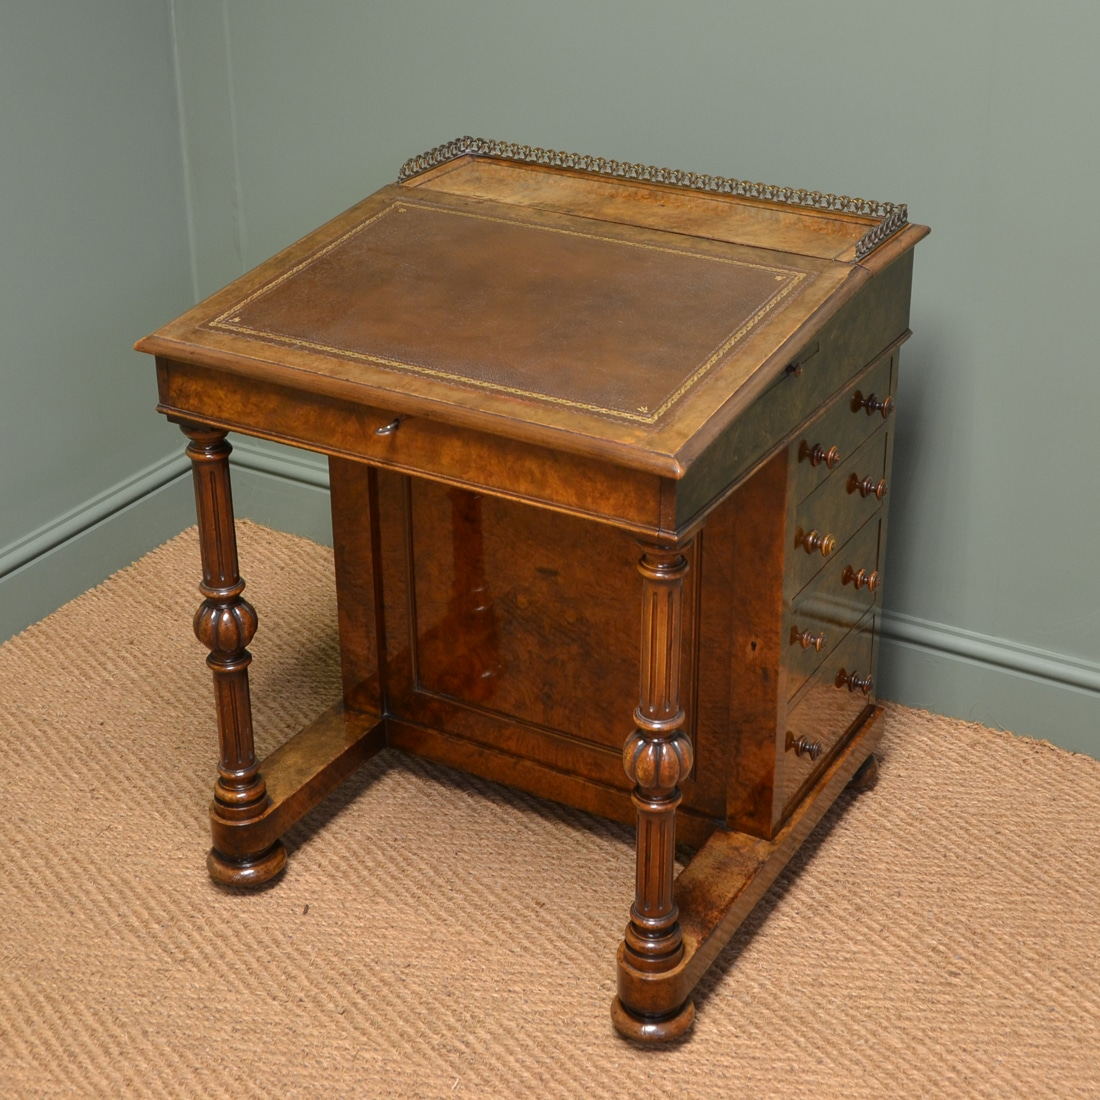 Spectacular Figured Burr Walnut Victorian Antique Davenport Writing Desk - Spectacular Figured Burr Walnut Victorian Antique Davenport Writing